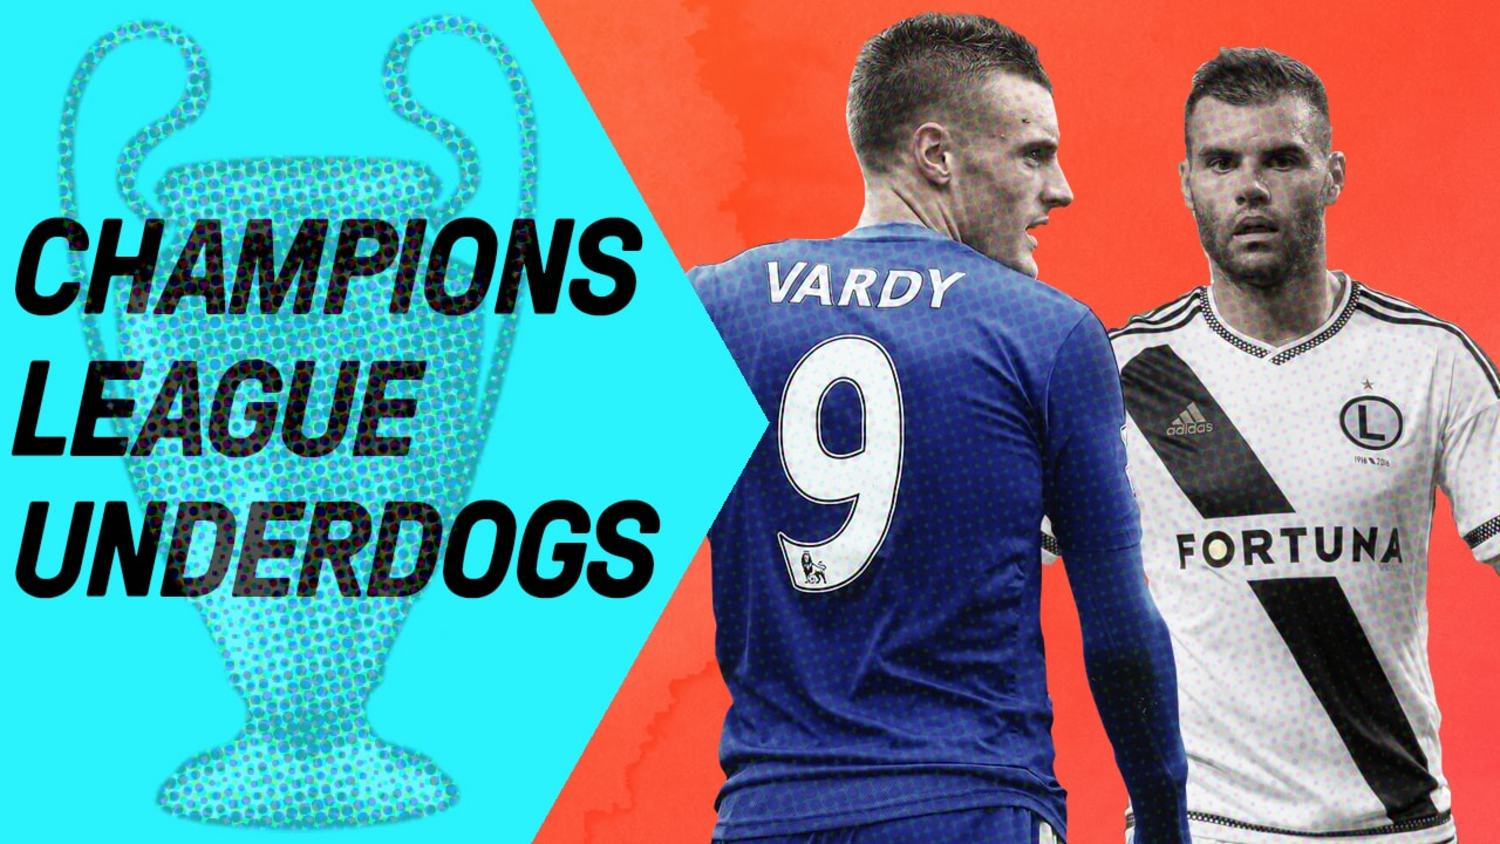 6 Underdogs Who Could Upset The Champions League